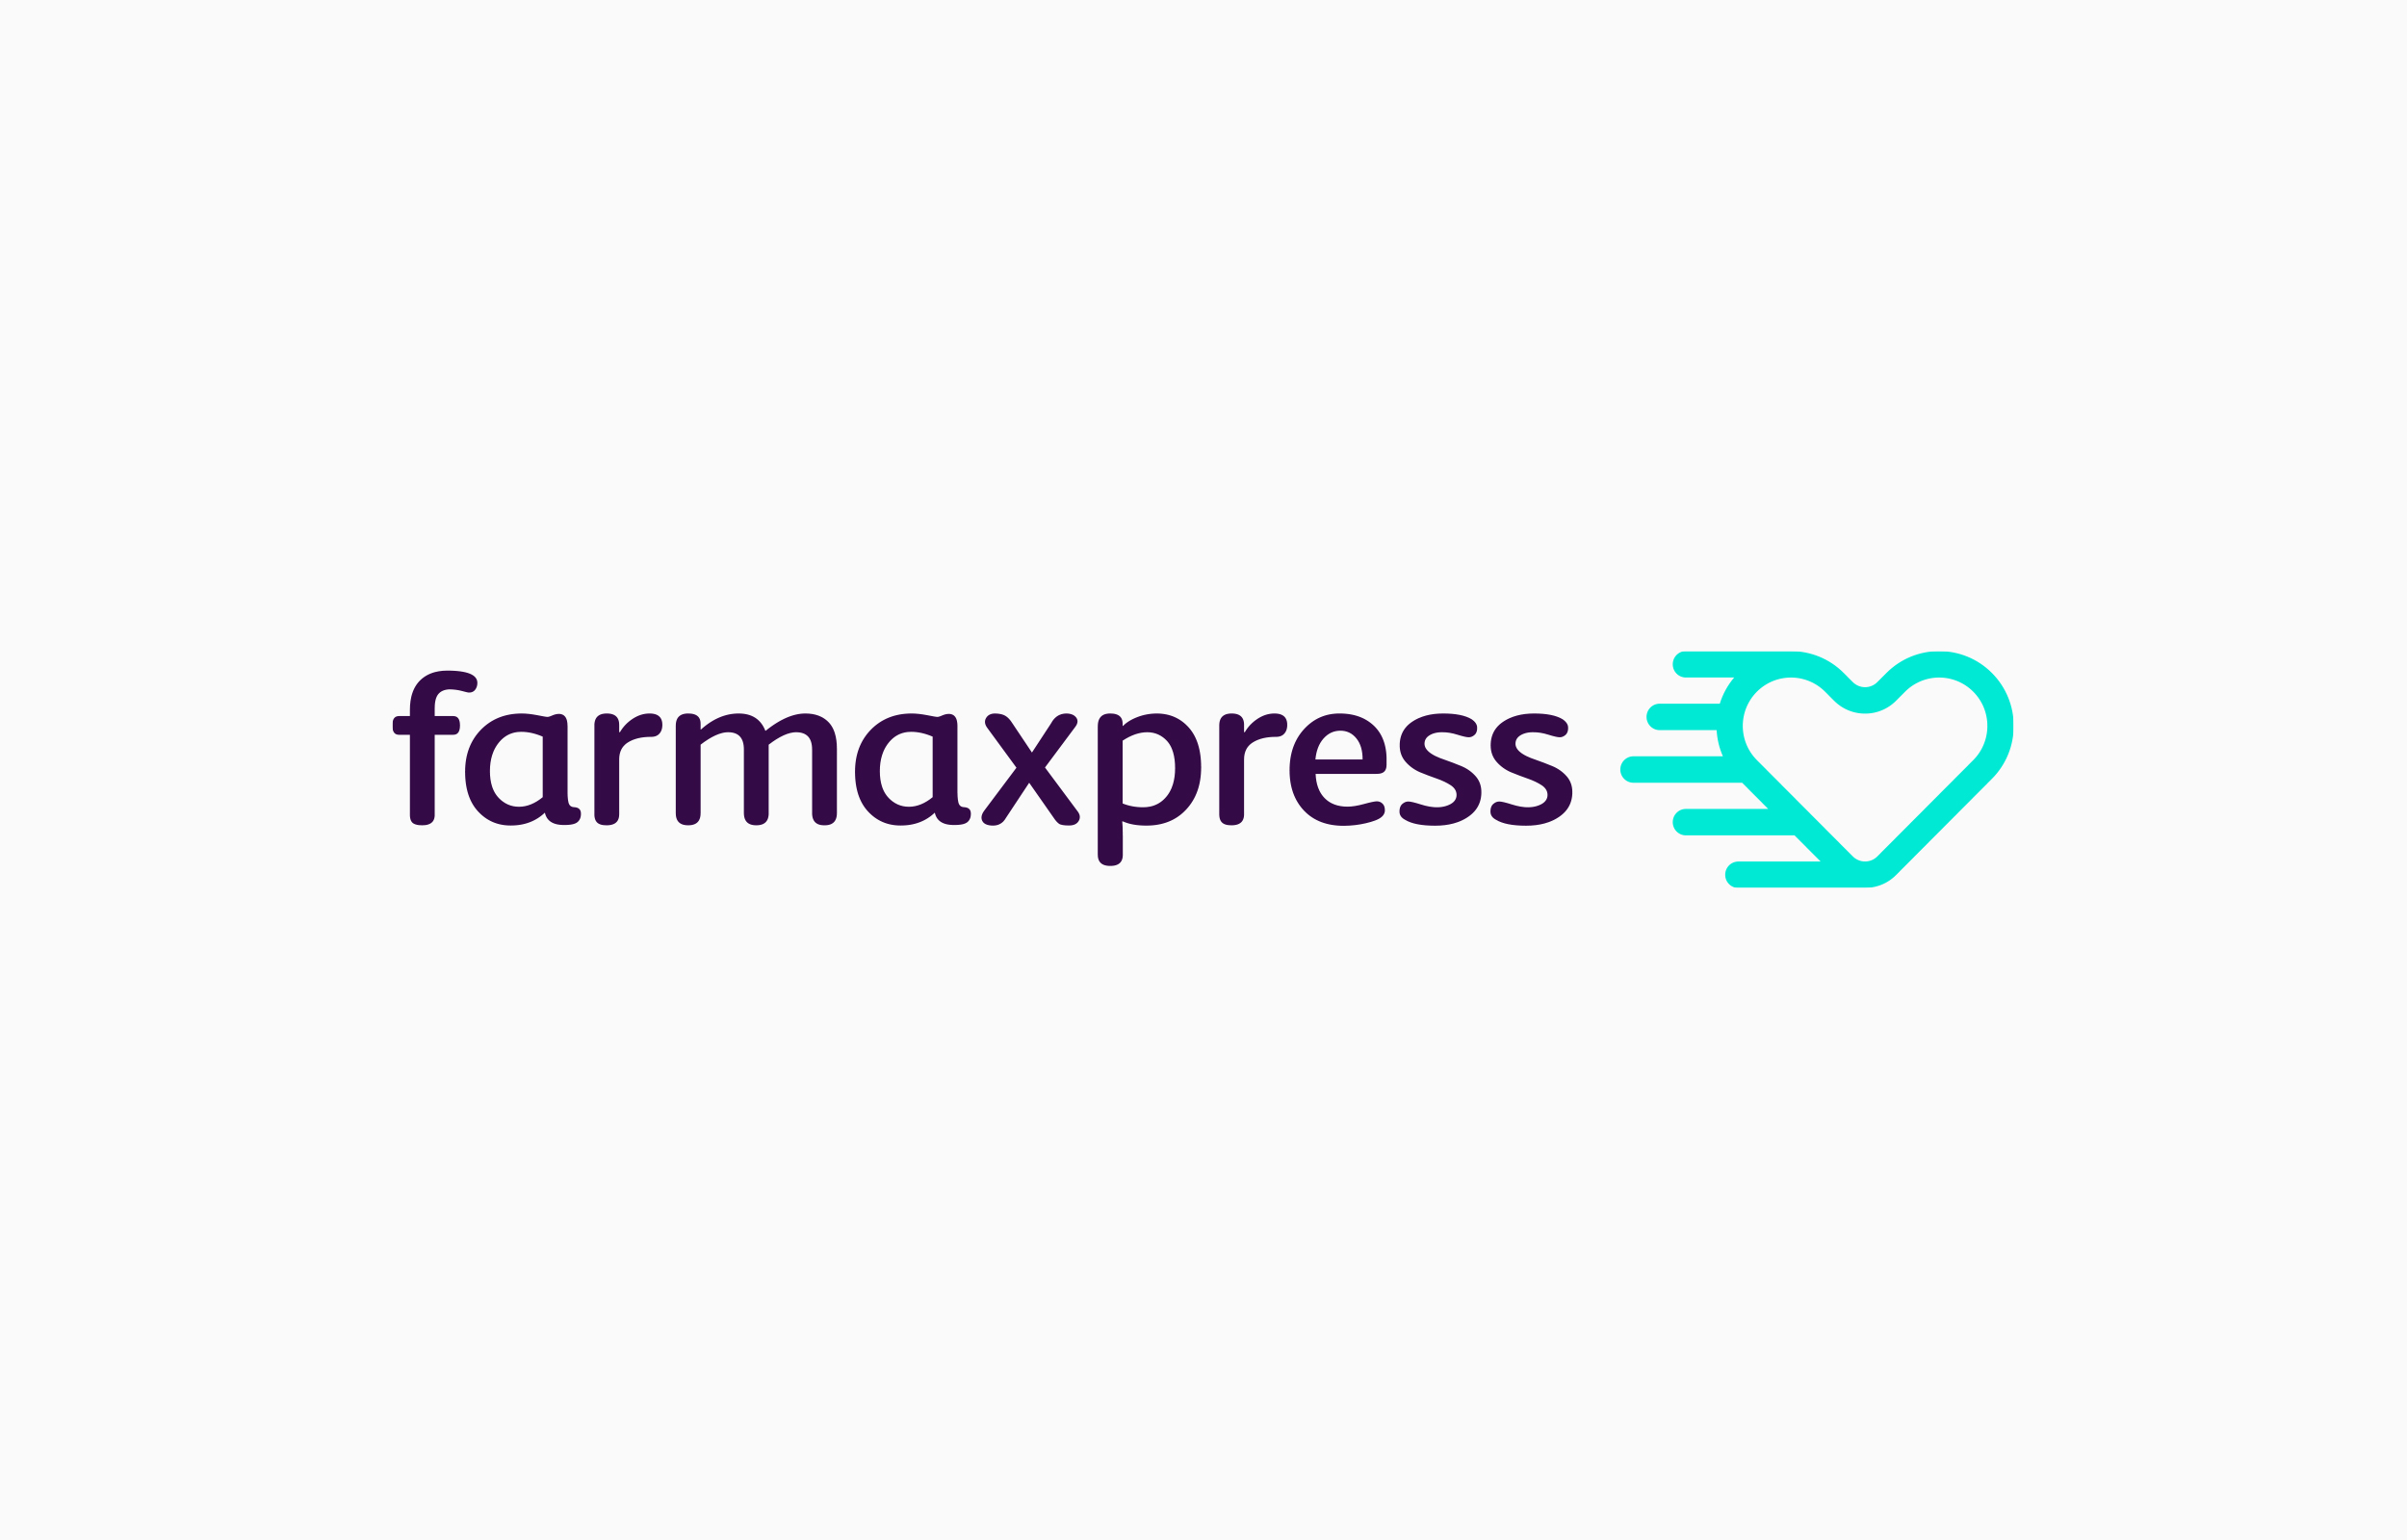 diferente_farmaxpress_logo_hr